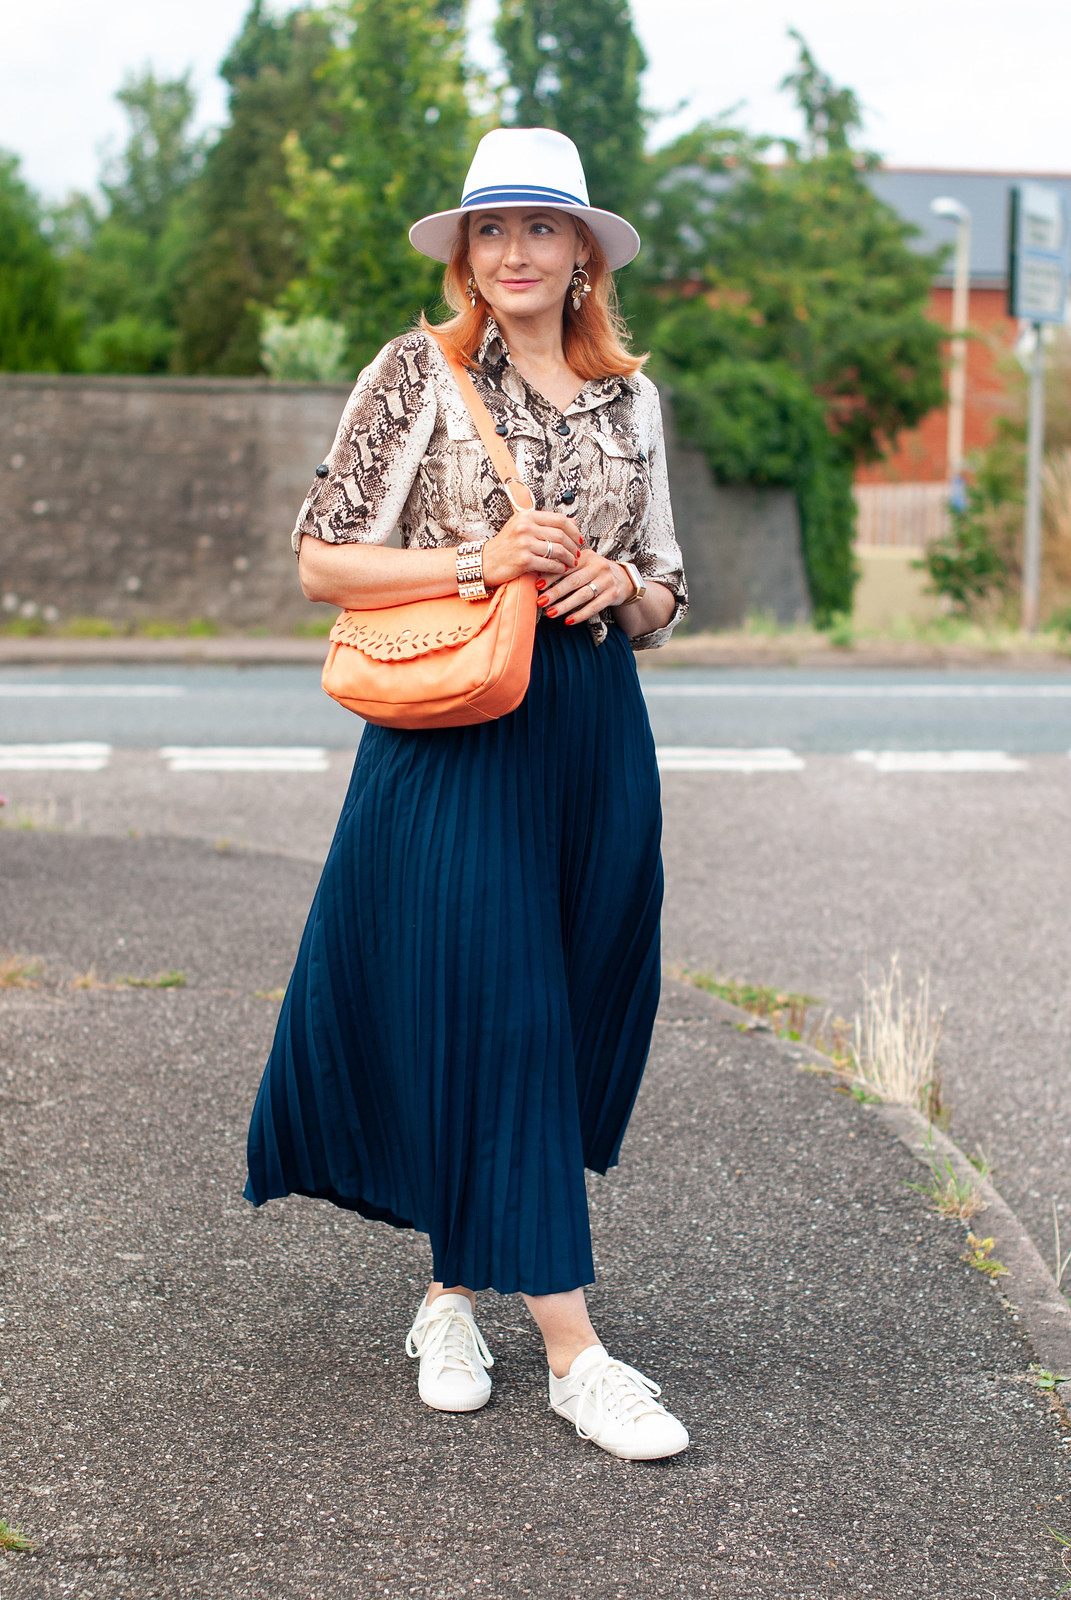 Why a Pleated Maxi With Sneaks is a Failsafe Summer Outfit \ snakeskin print shirt \ navy pleated maxi skirt \ white fedora \ white sneaks \ orange shoulder bag | Not Dressed As Lamb, over 40 fashion